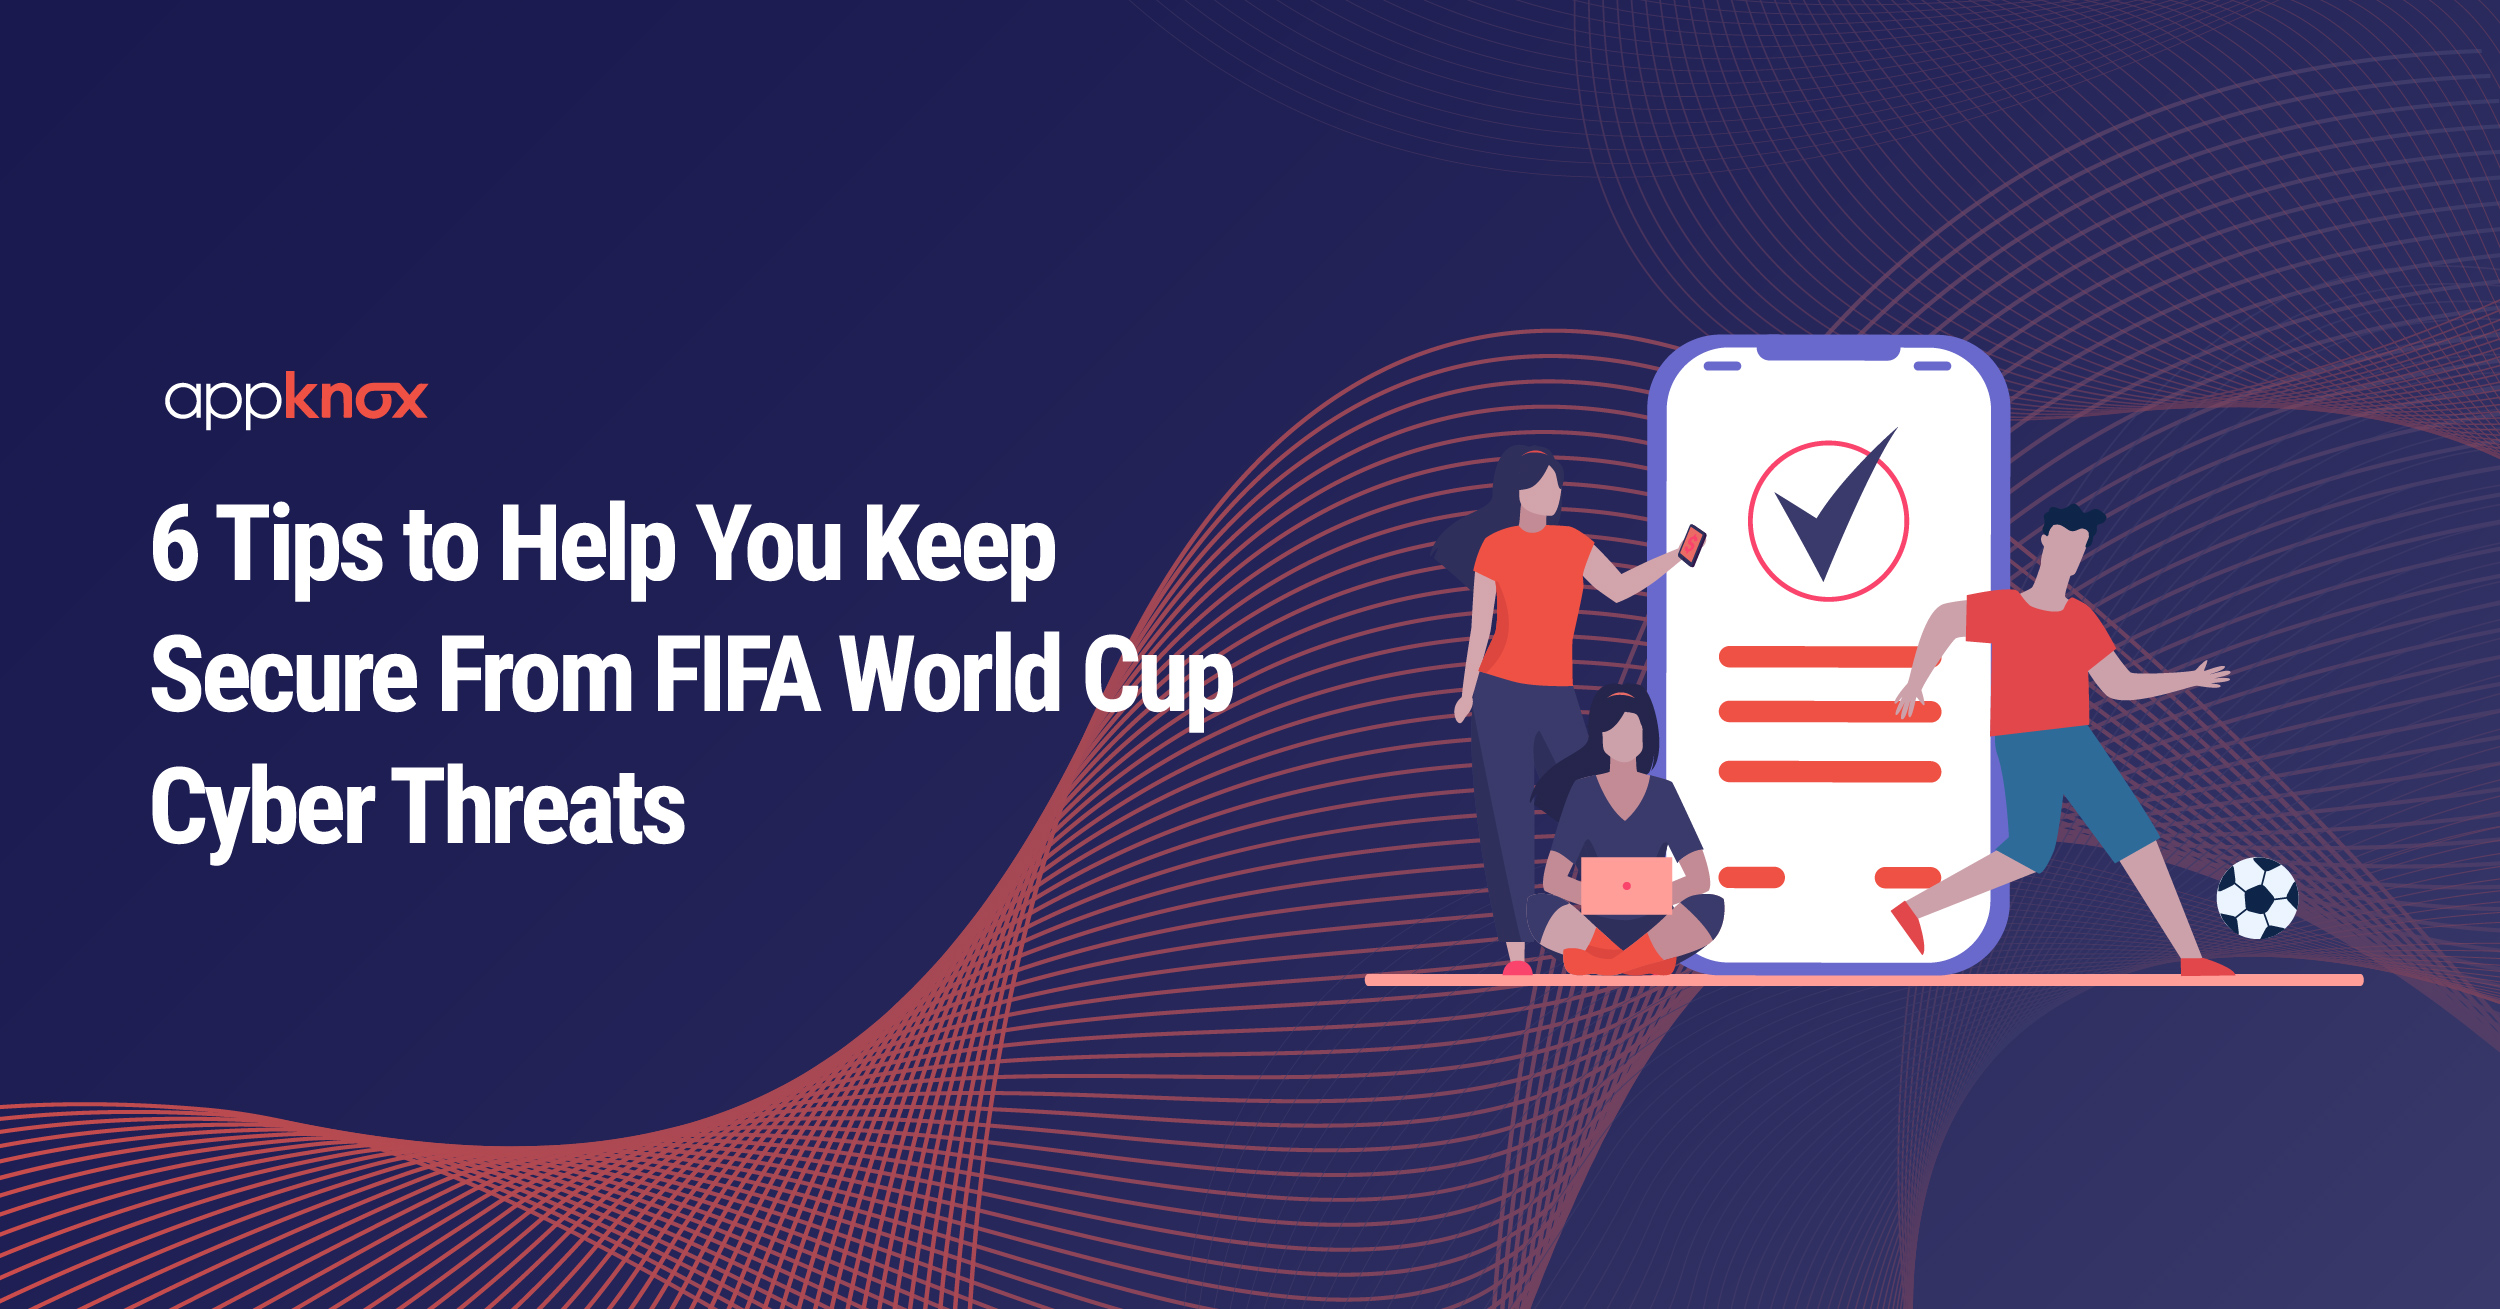 6 Tips to Help You Keep Secure From FIFA World Cup Cyber Threats